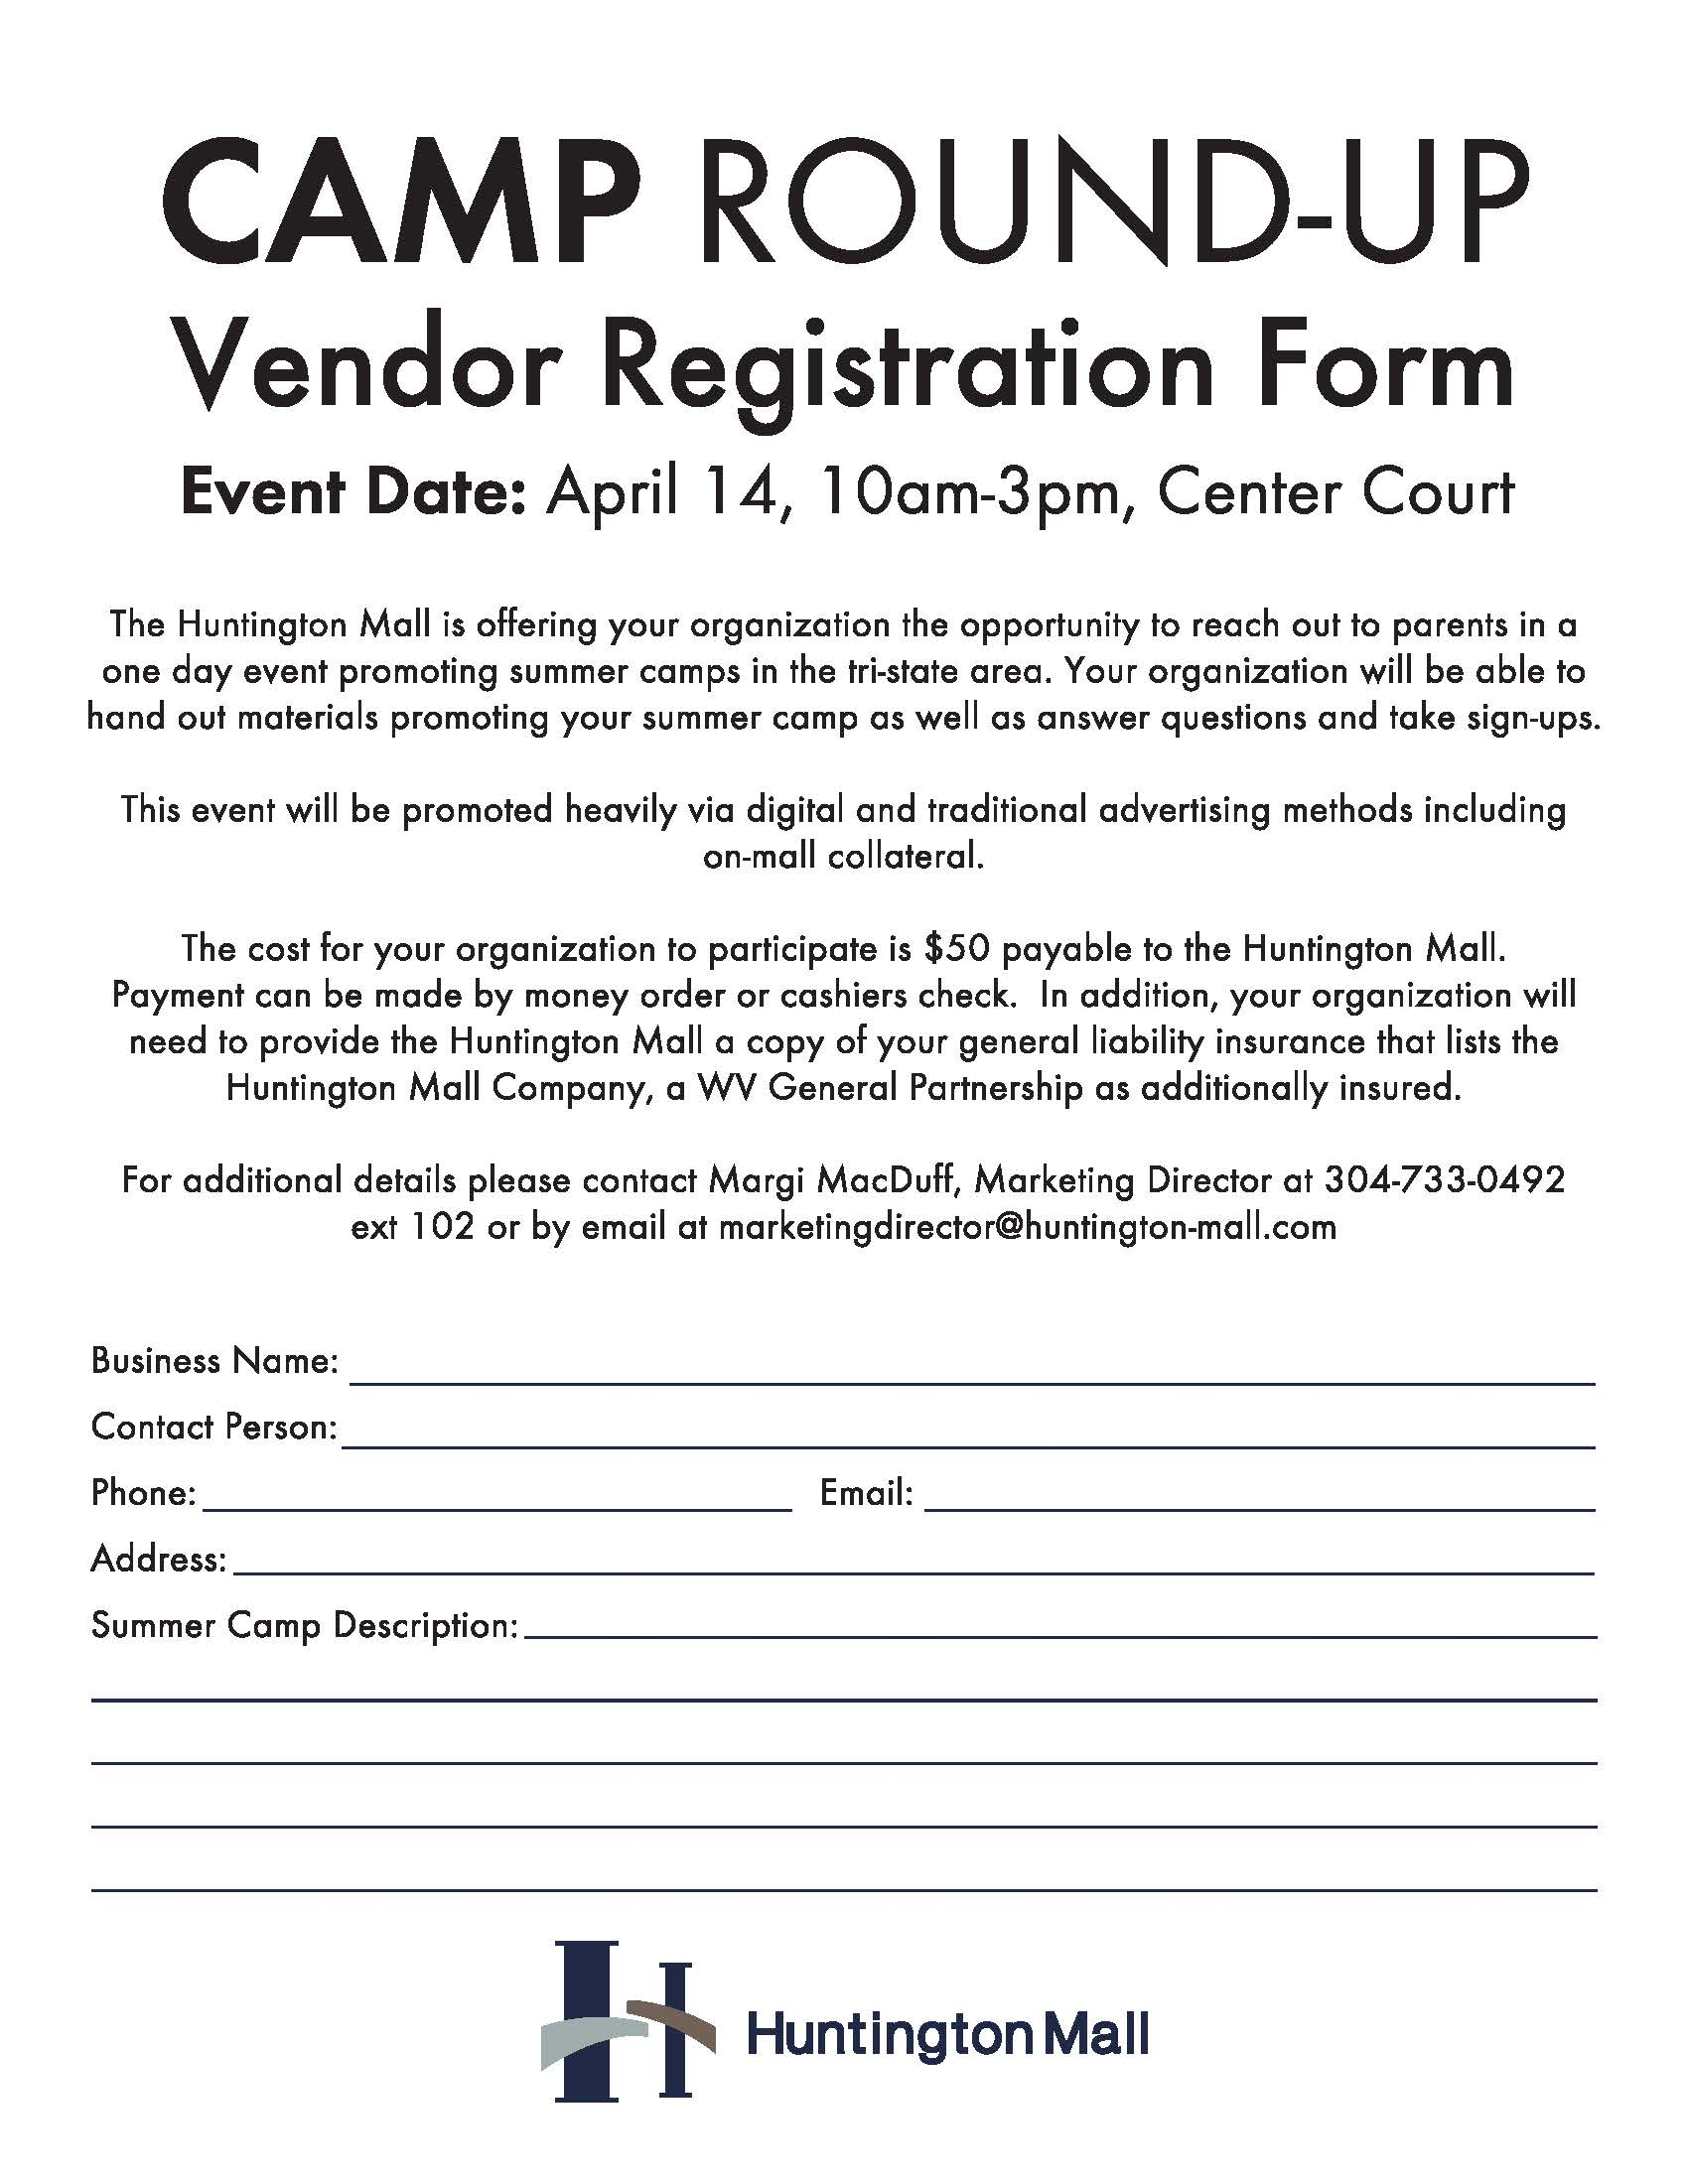 Event Camp Round Up at the Huntington Mall on April 14